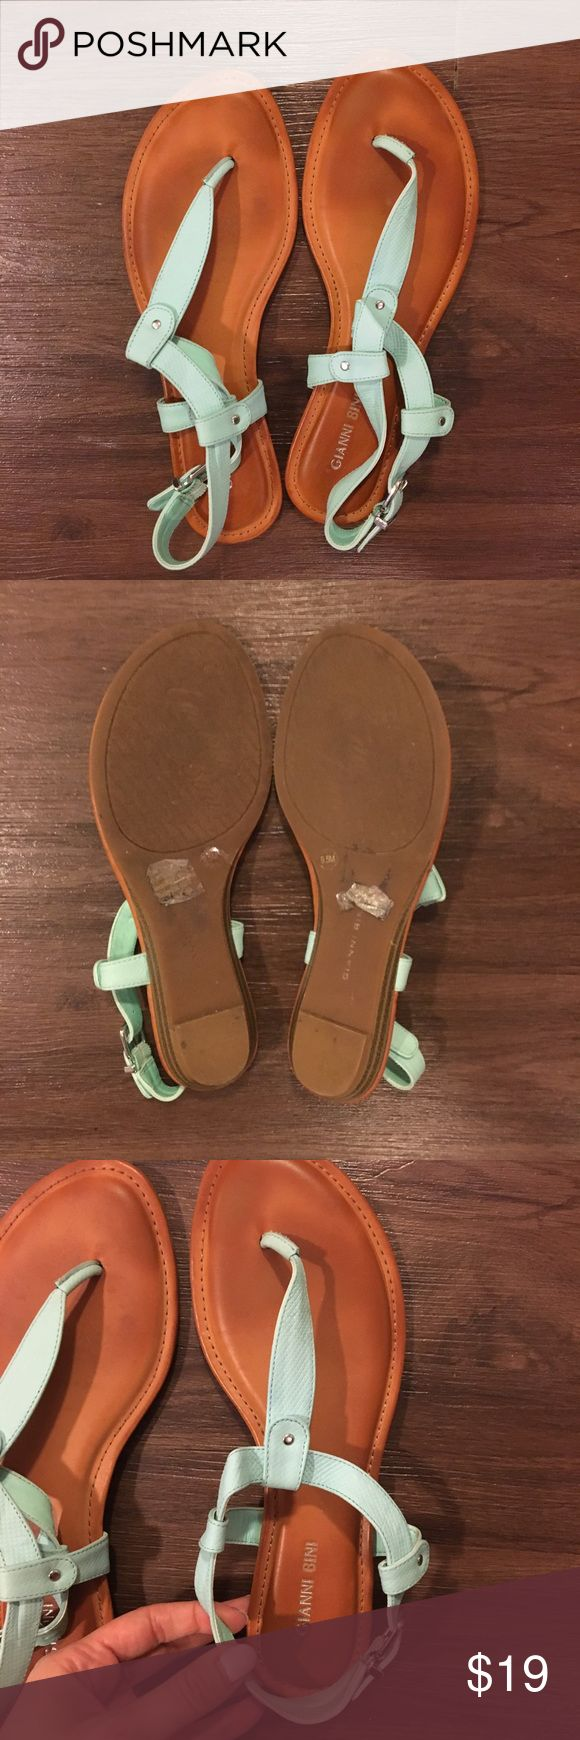 Gianni Bini Turquoise Sandals These sandals have only been worn a few times. Great condition! Size 9 1/2 Gianni Bini Shoes Sandals